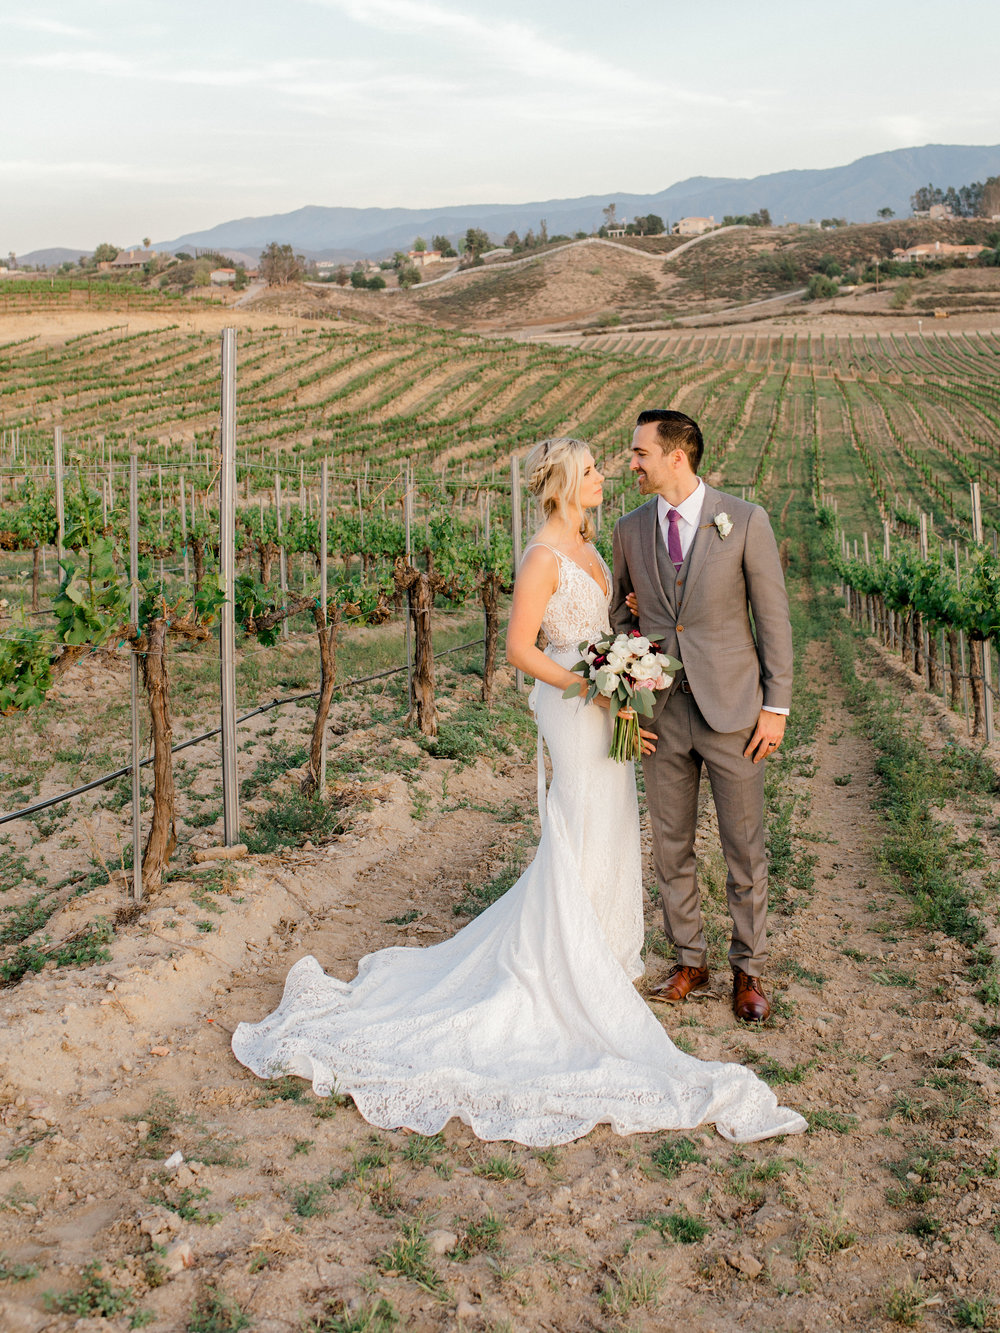 Avensole Winery by Heather Anderson Photo